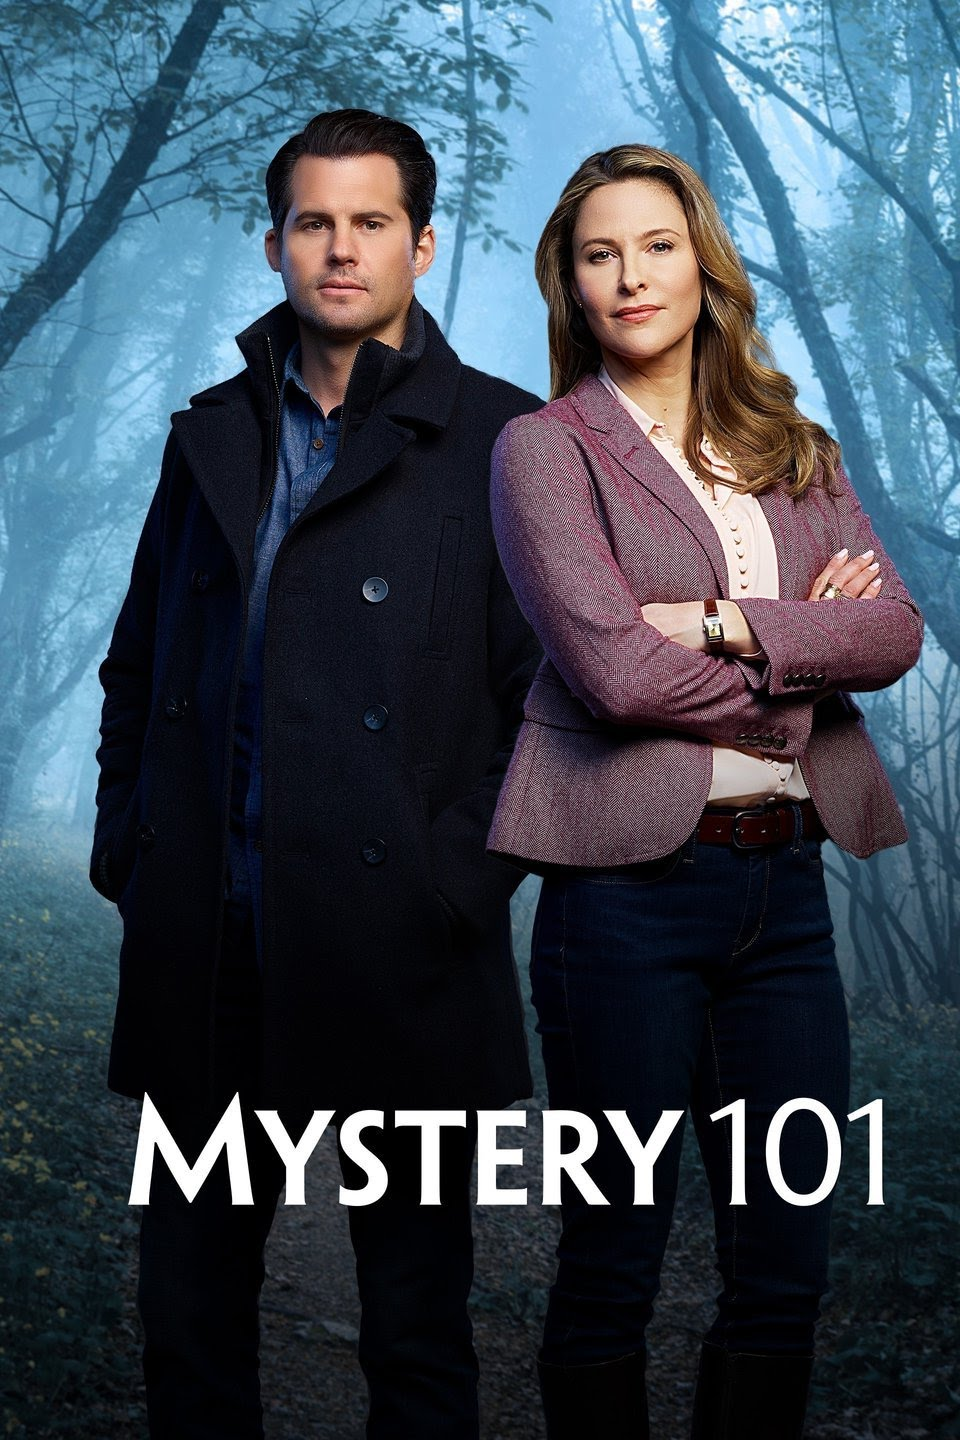 Watch Online Episode 8 of Mystery 101 || Release date and Everything you need to know ||